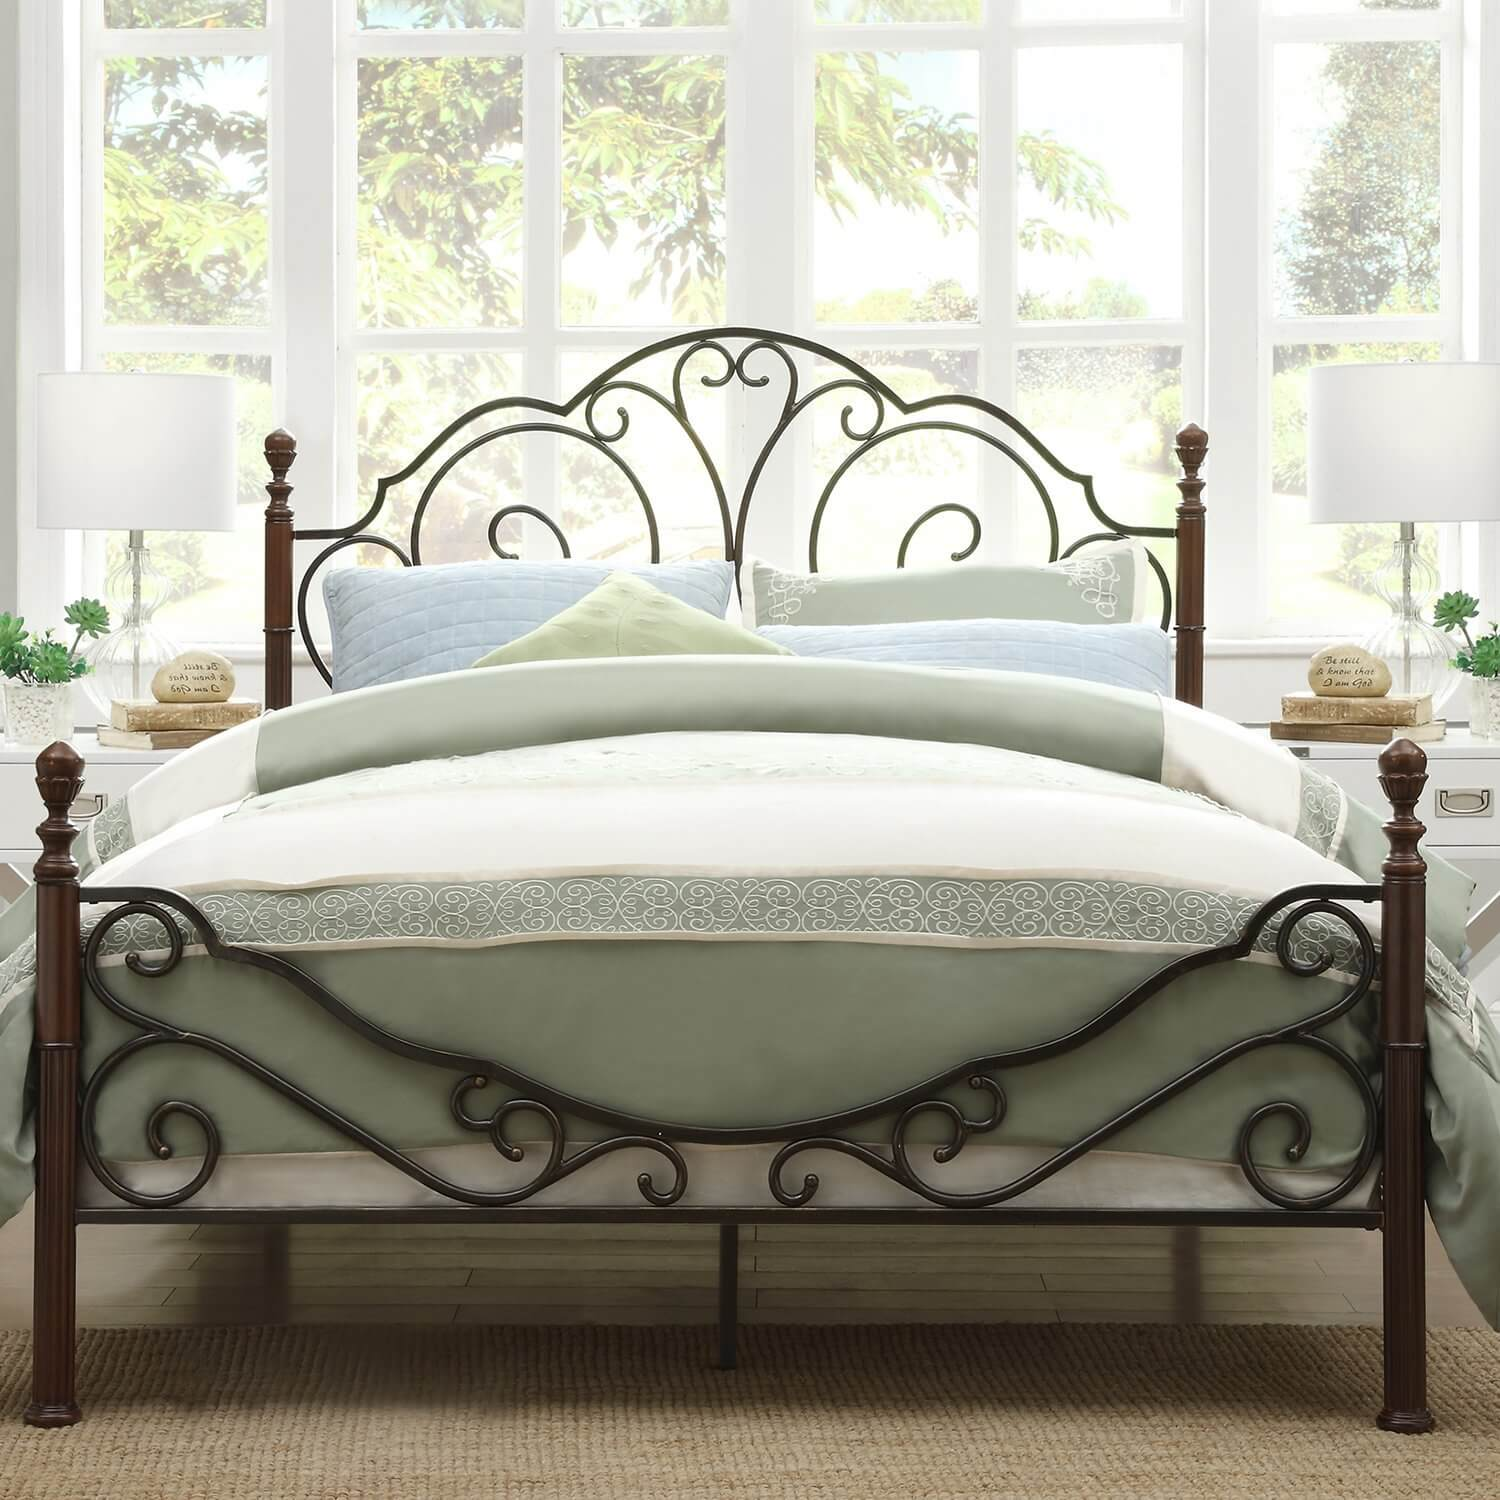 amazing wrought iron beds that can be found on amazon count me in - Wrought Iron Bed Frame